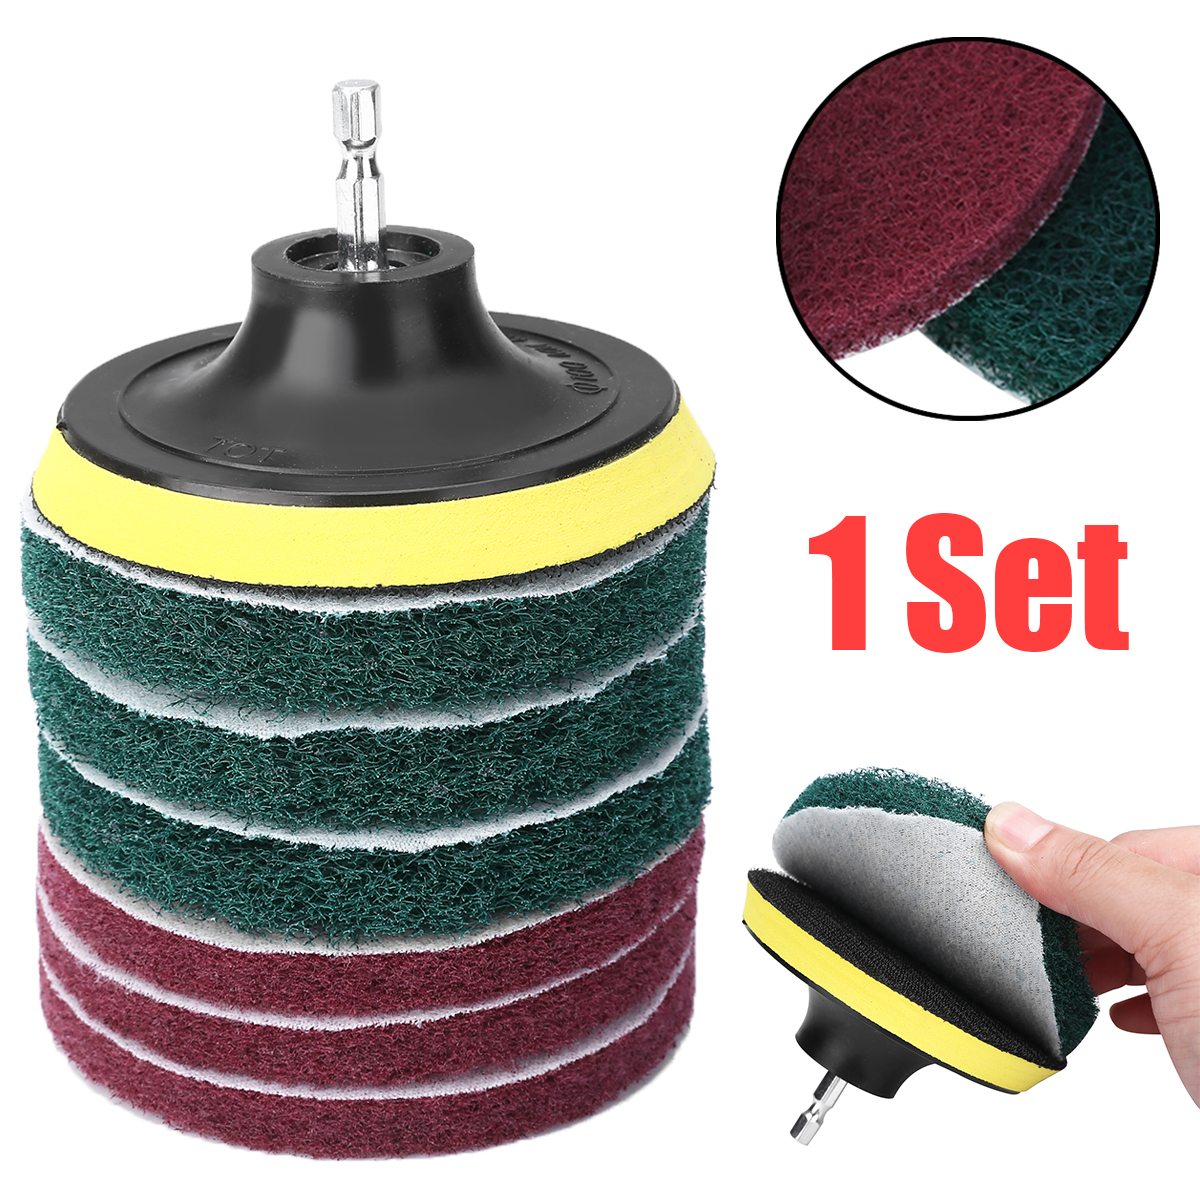 1set Drill Scouring Pads 6.35mm Hex Rod 4 Inch Sticky Disk Cleaner Sanding Drill Attachment For Tiles Sinks Bathtub Cleaning Kit